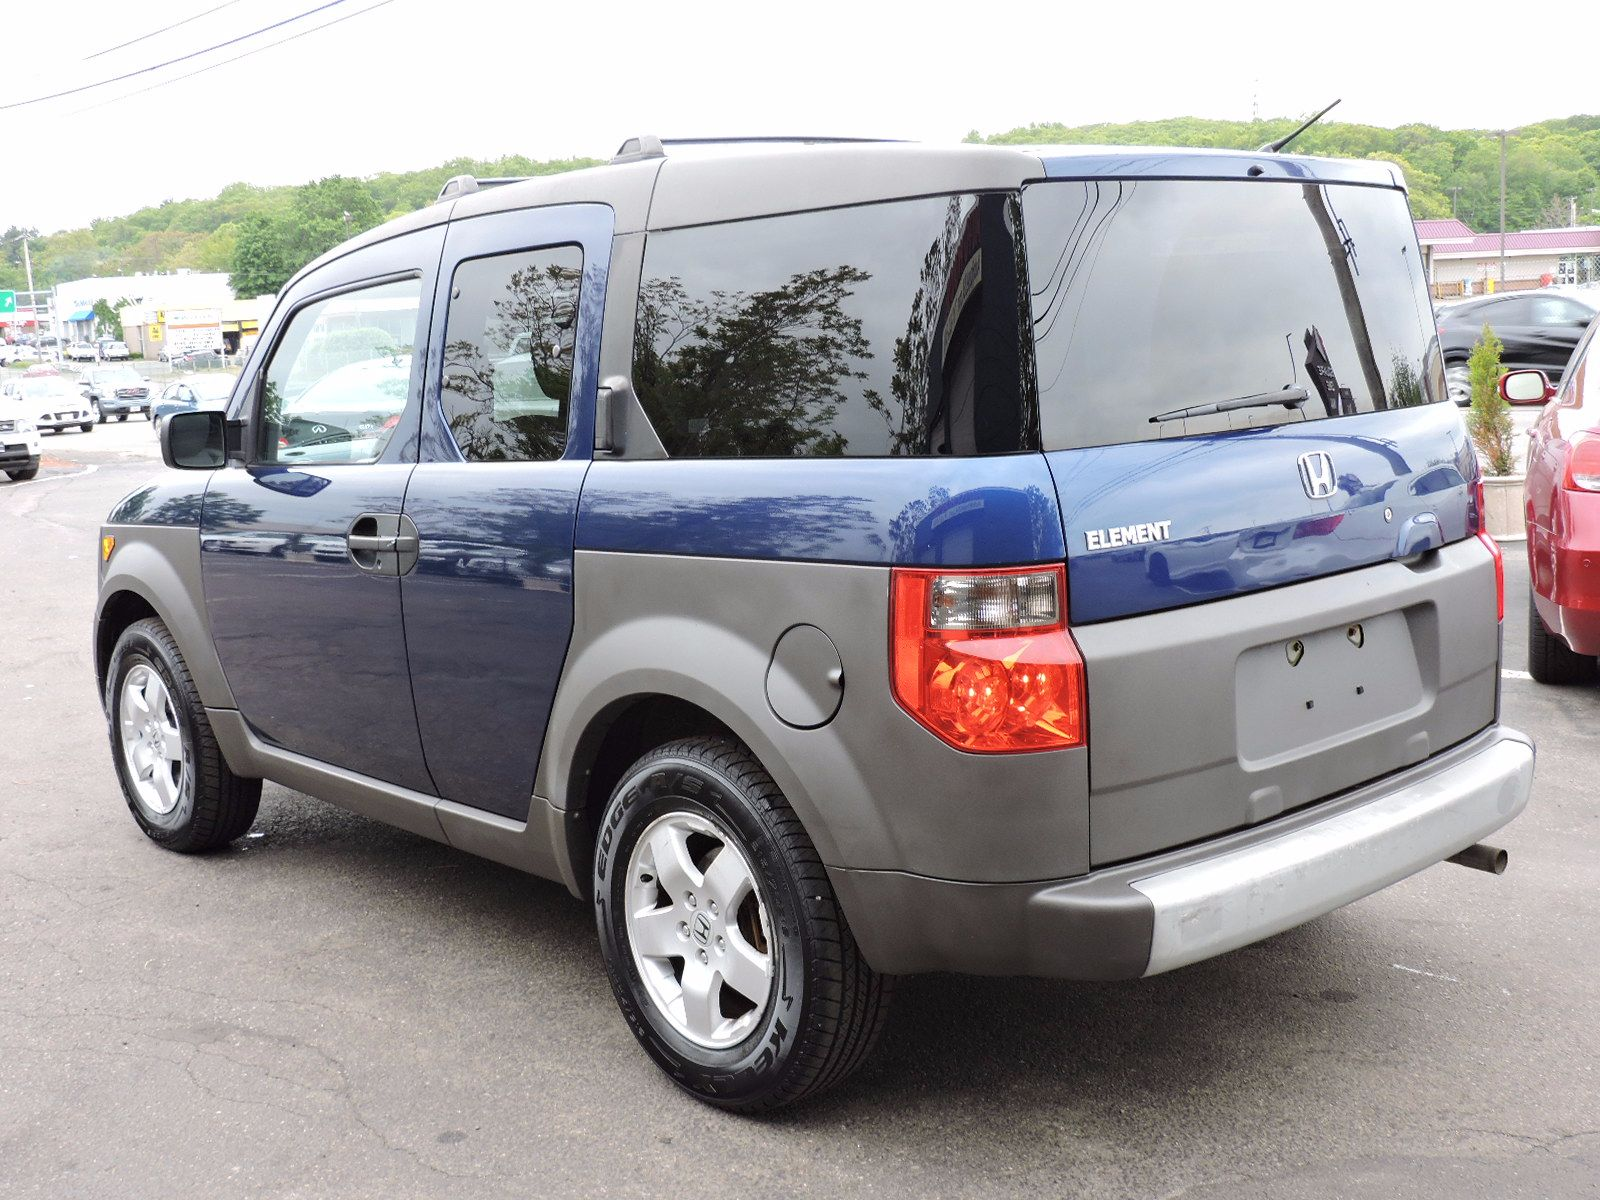 used 2003 honda element ex at saugus auto mall rh saugusautomall com 2010 Honda Element 2010 Honda Element